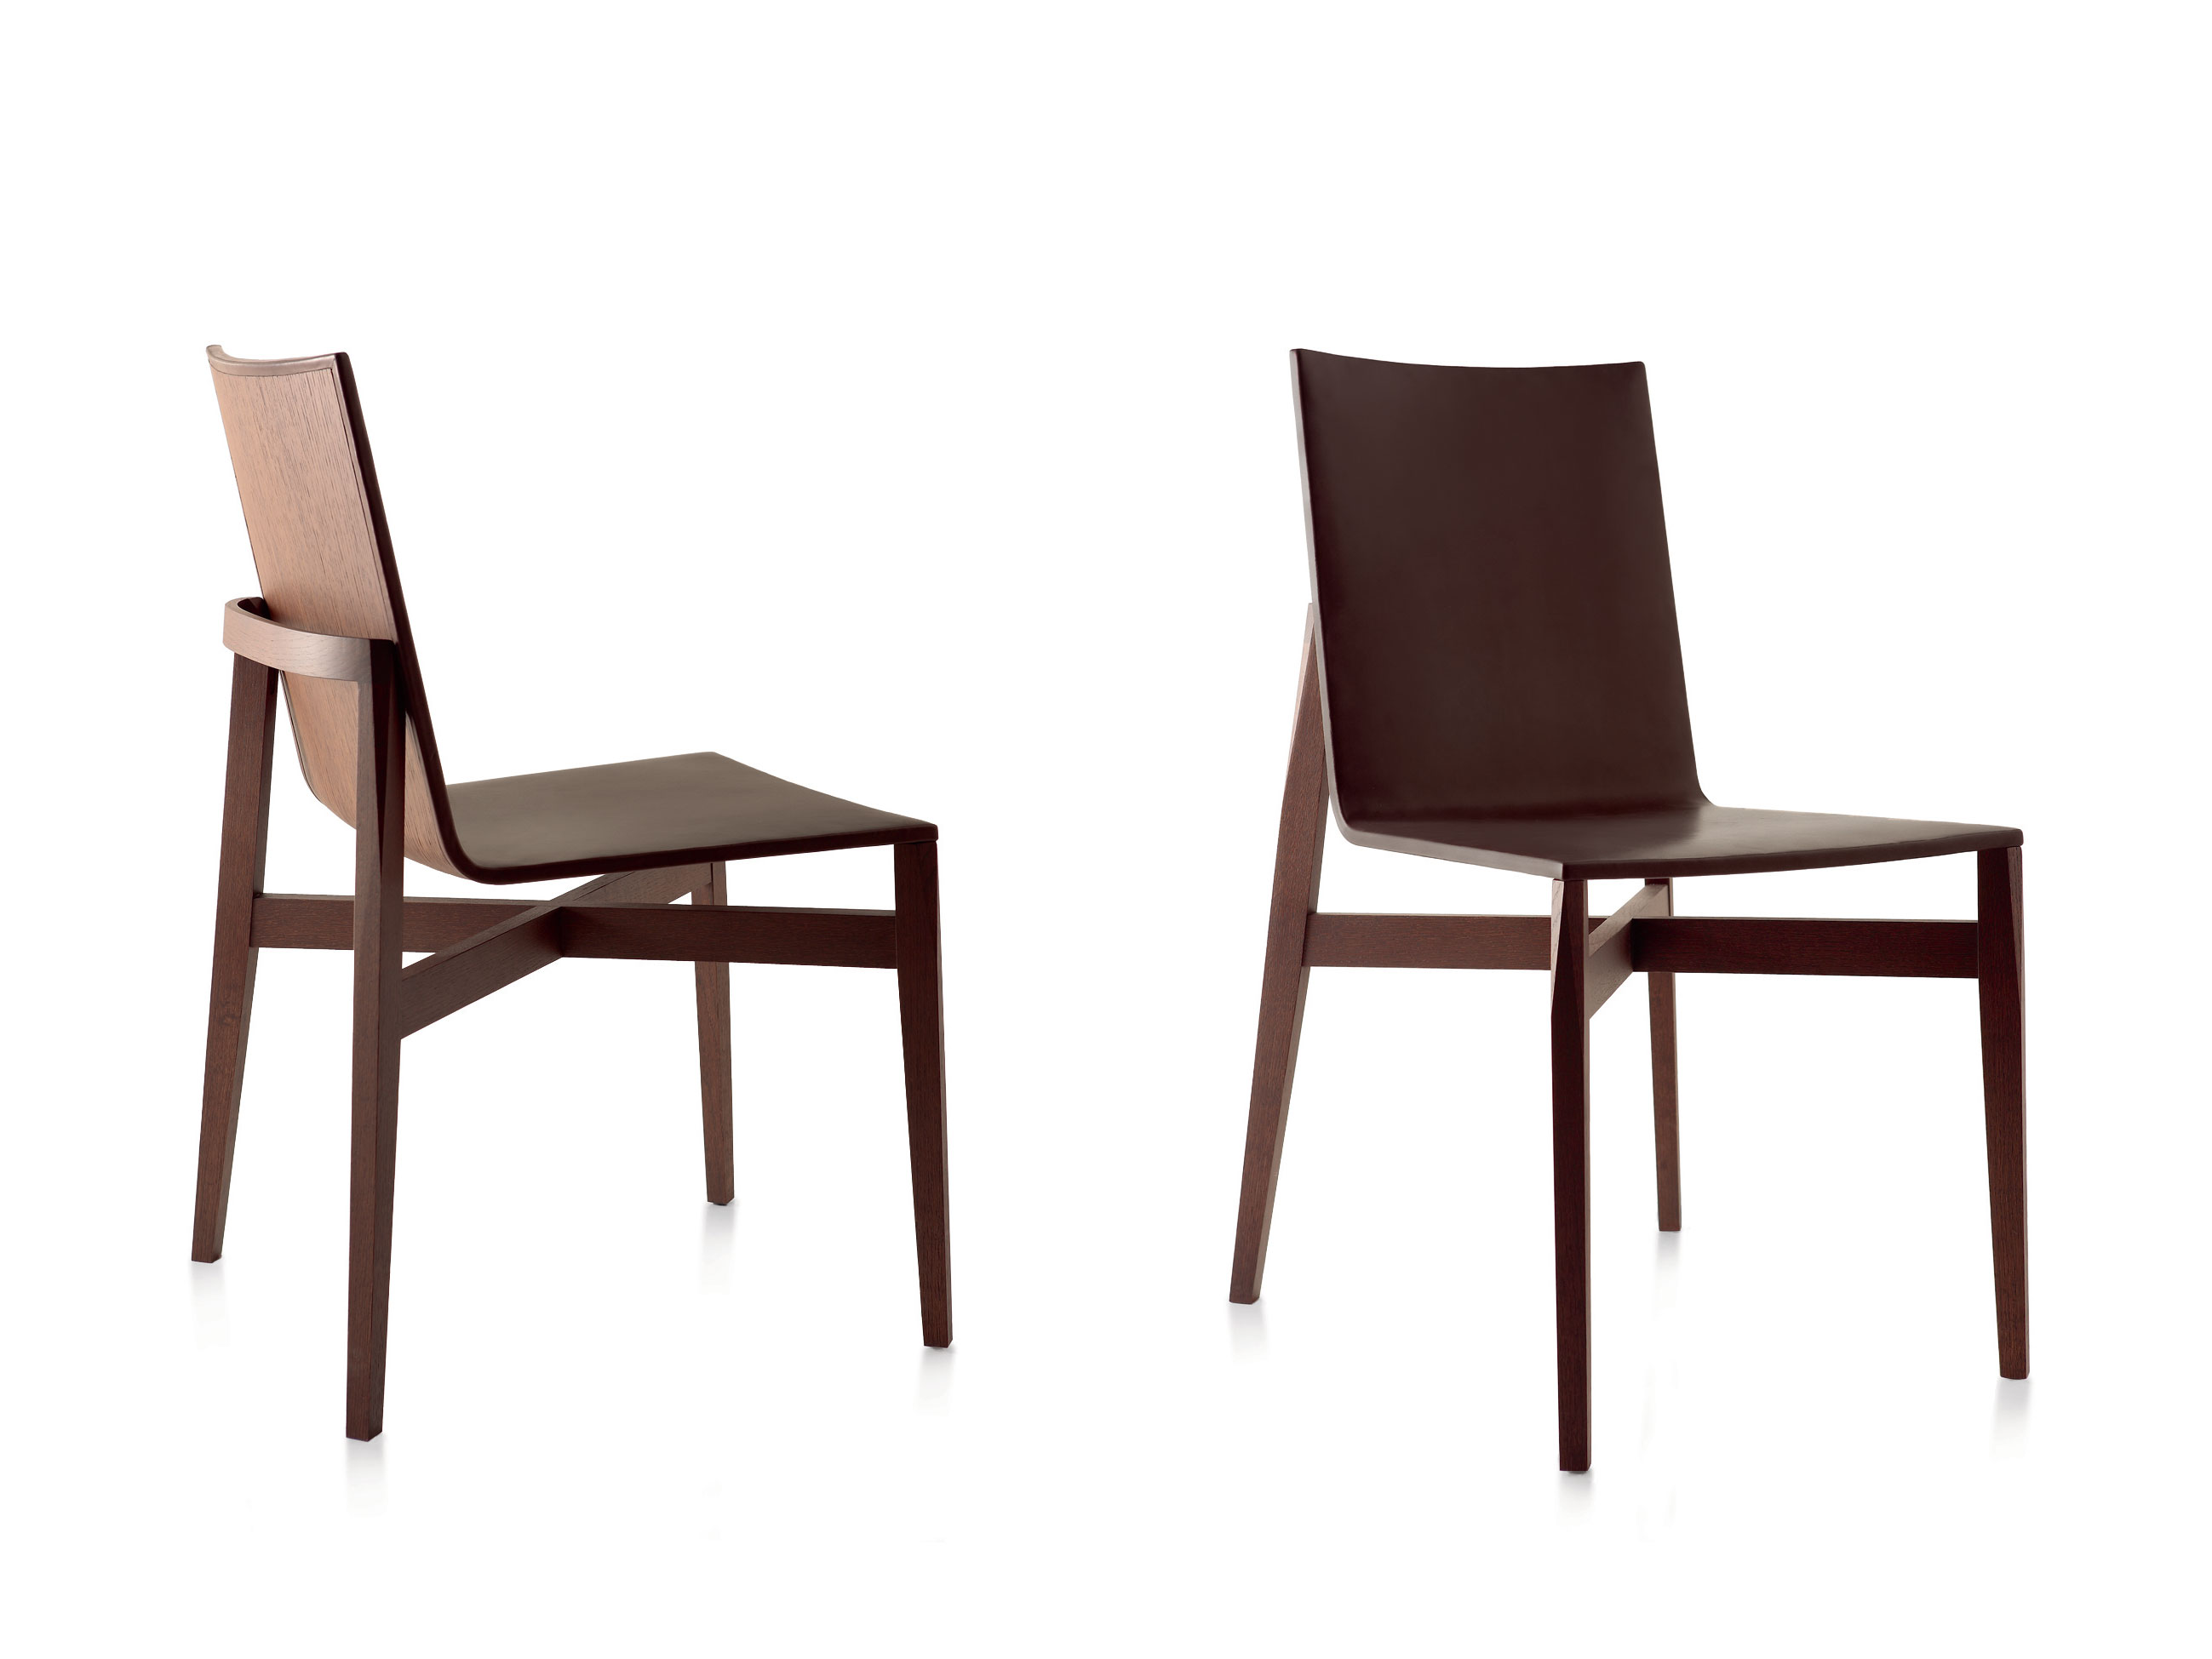 Who Dining Chair By Molteni Hub Furniture Lighting Living : 1362723 11 20152863 from www.hubfurniture.com.au size 2598 x 1949 jpeg 190kB